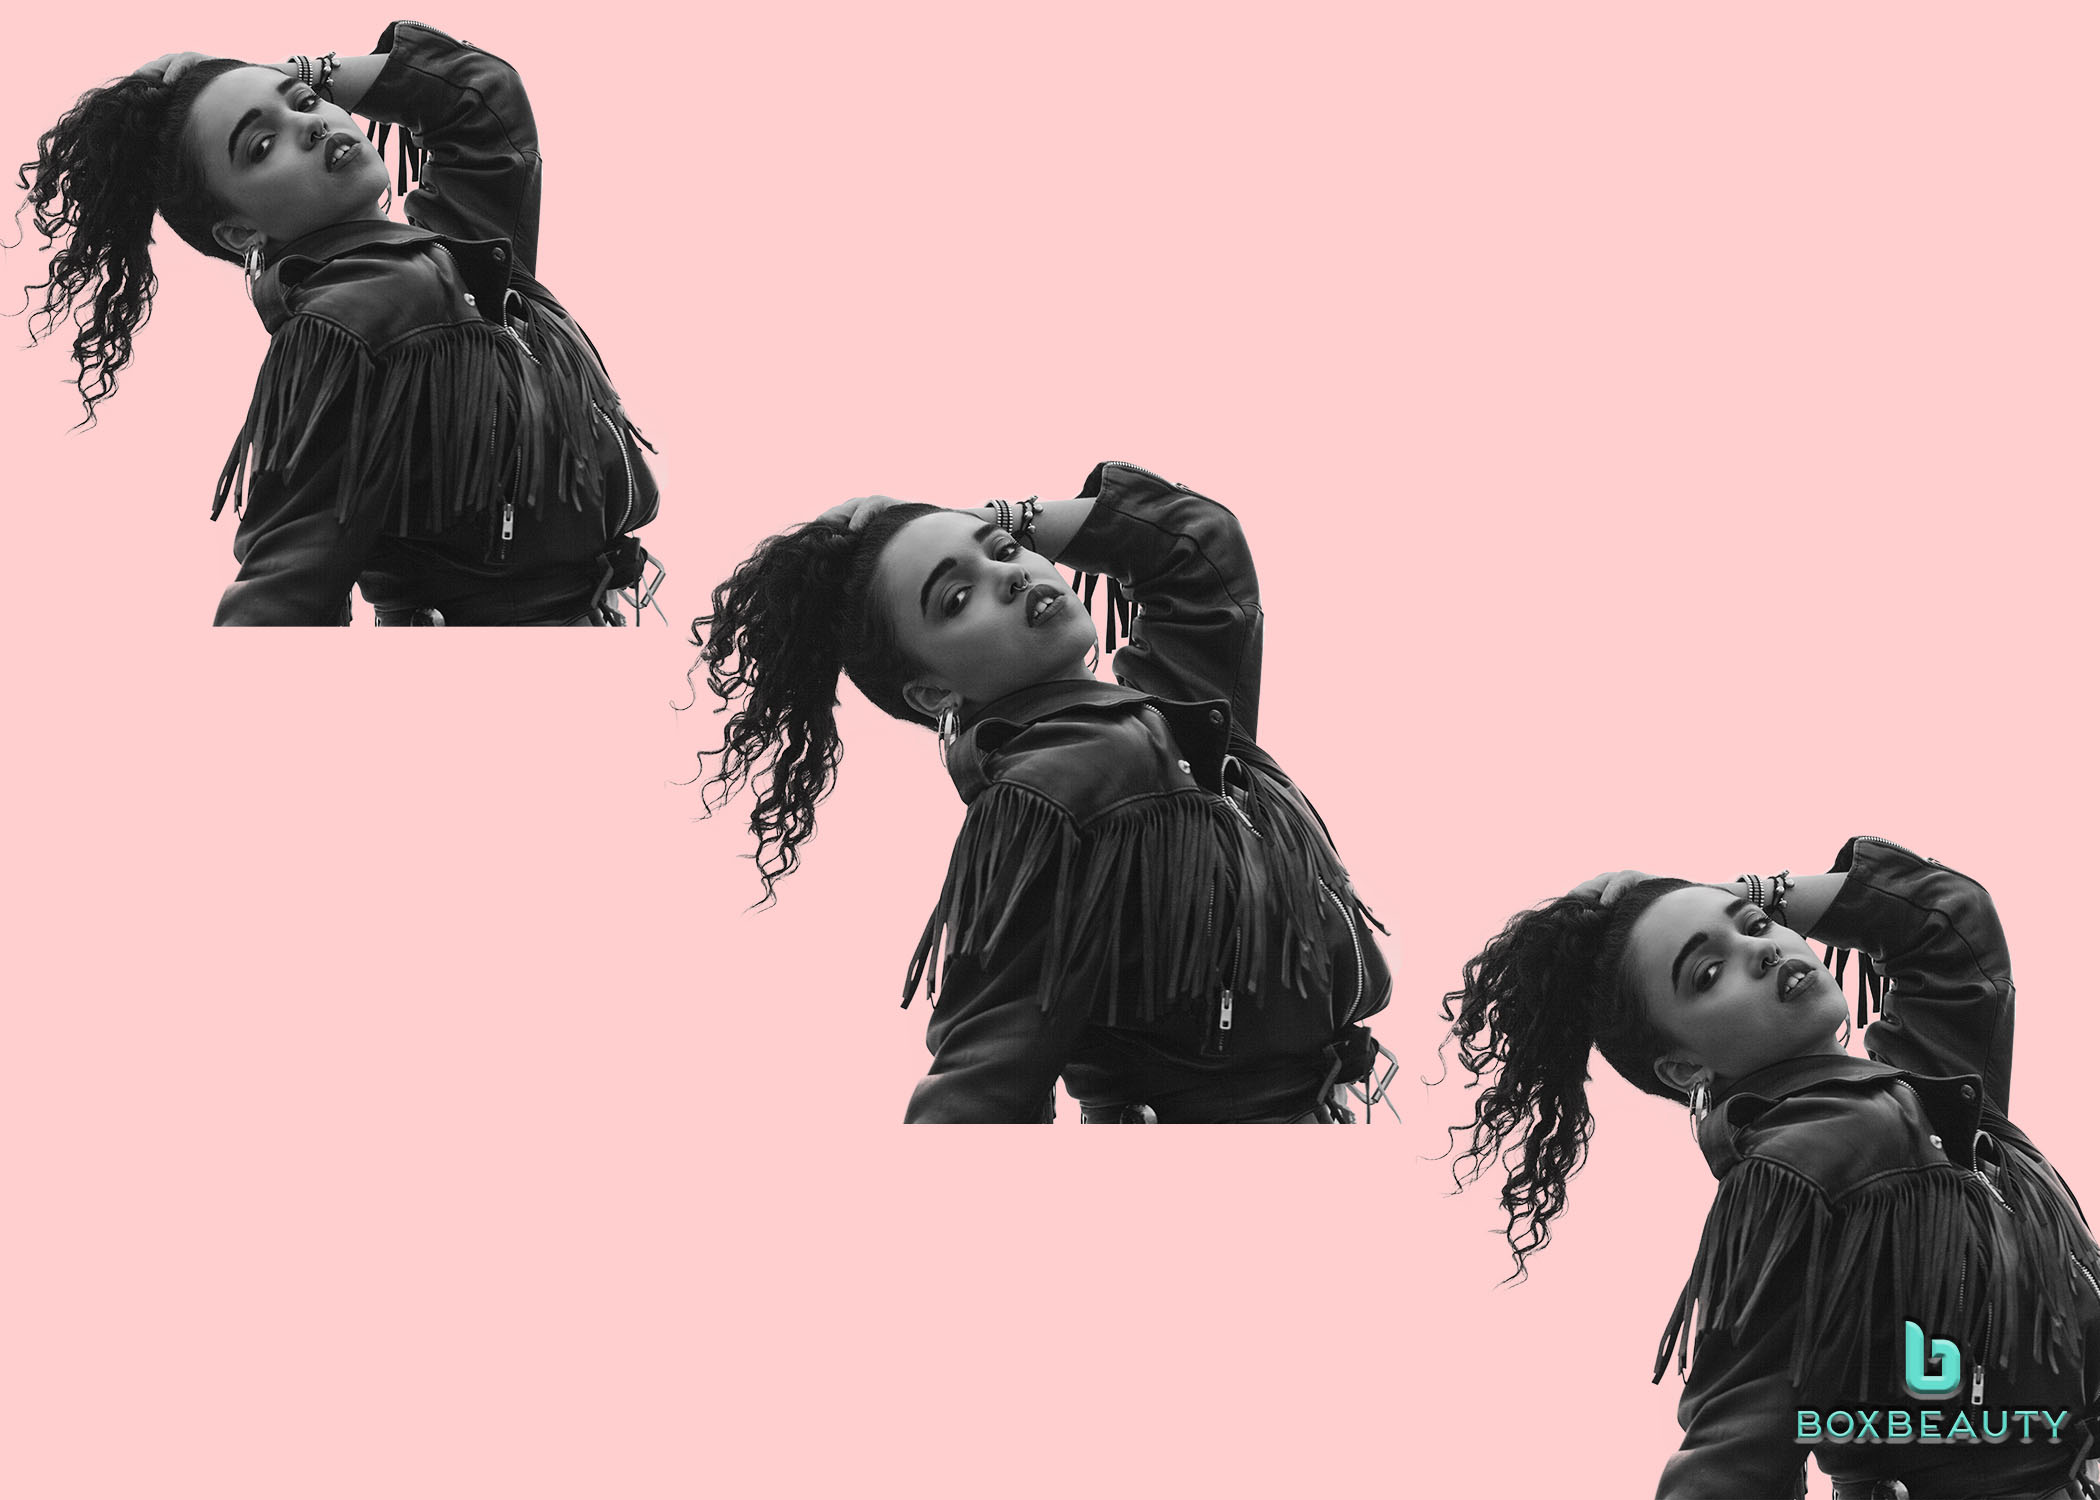 After A Three Year Hiatus, Is There Room for FKA Twigs in the Industry?